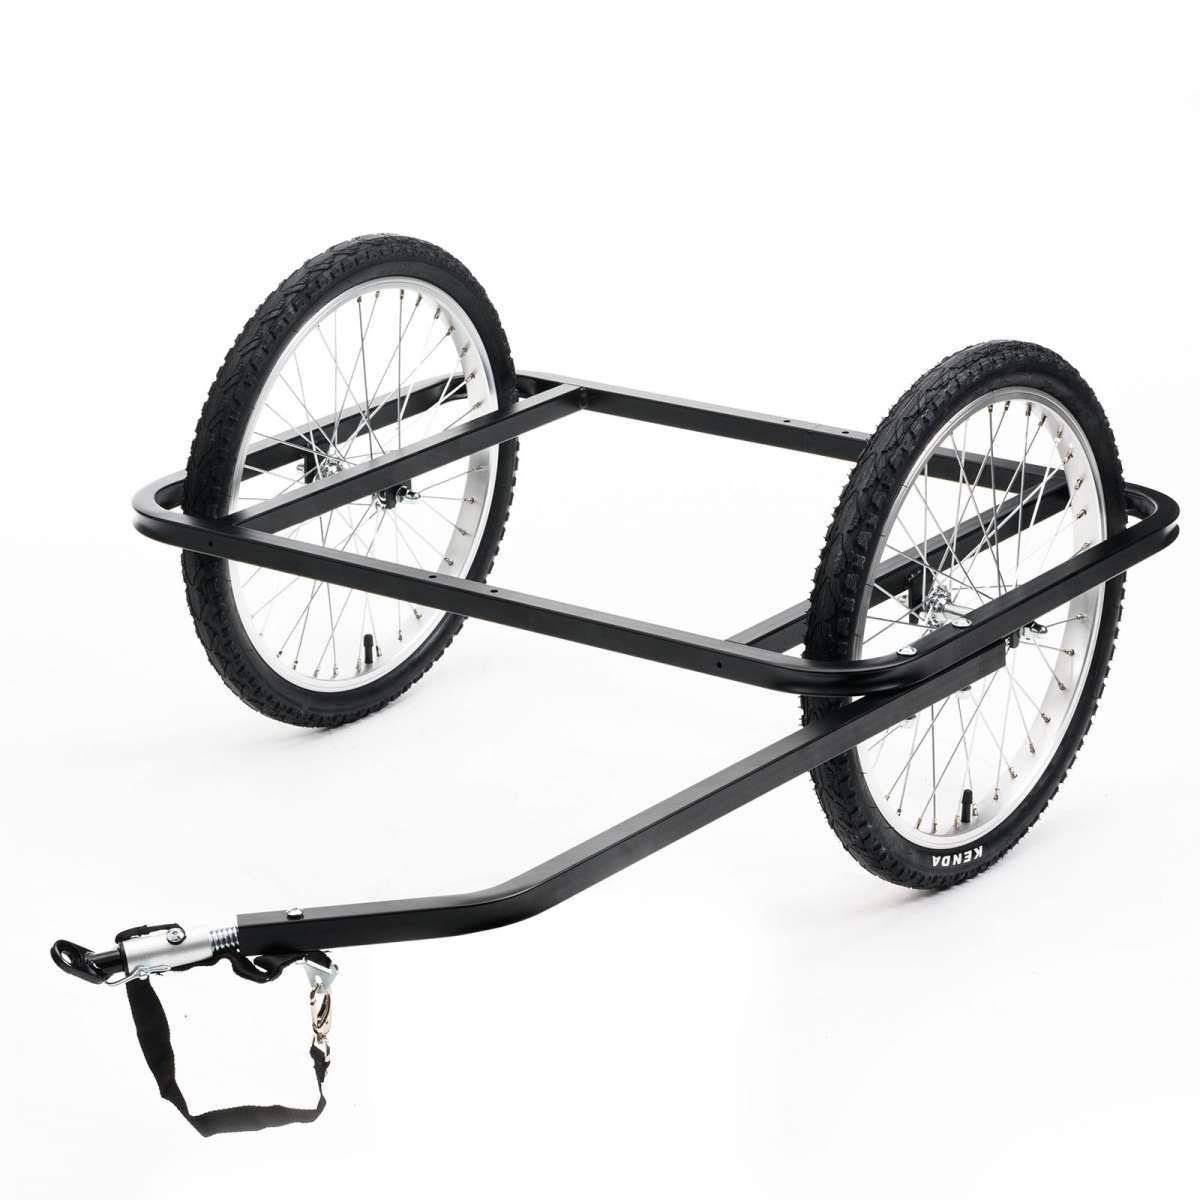 lastenanh nger bausatz mit tiefdeichsel cargo bikes pinterest. Black Bedroom Furniture Sets. Home Design Ideas